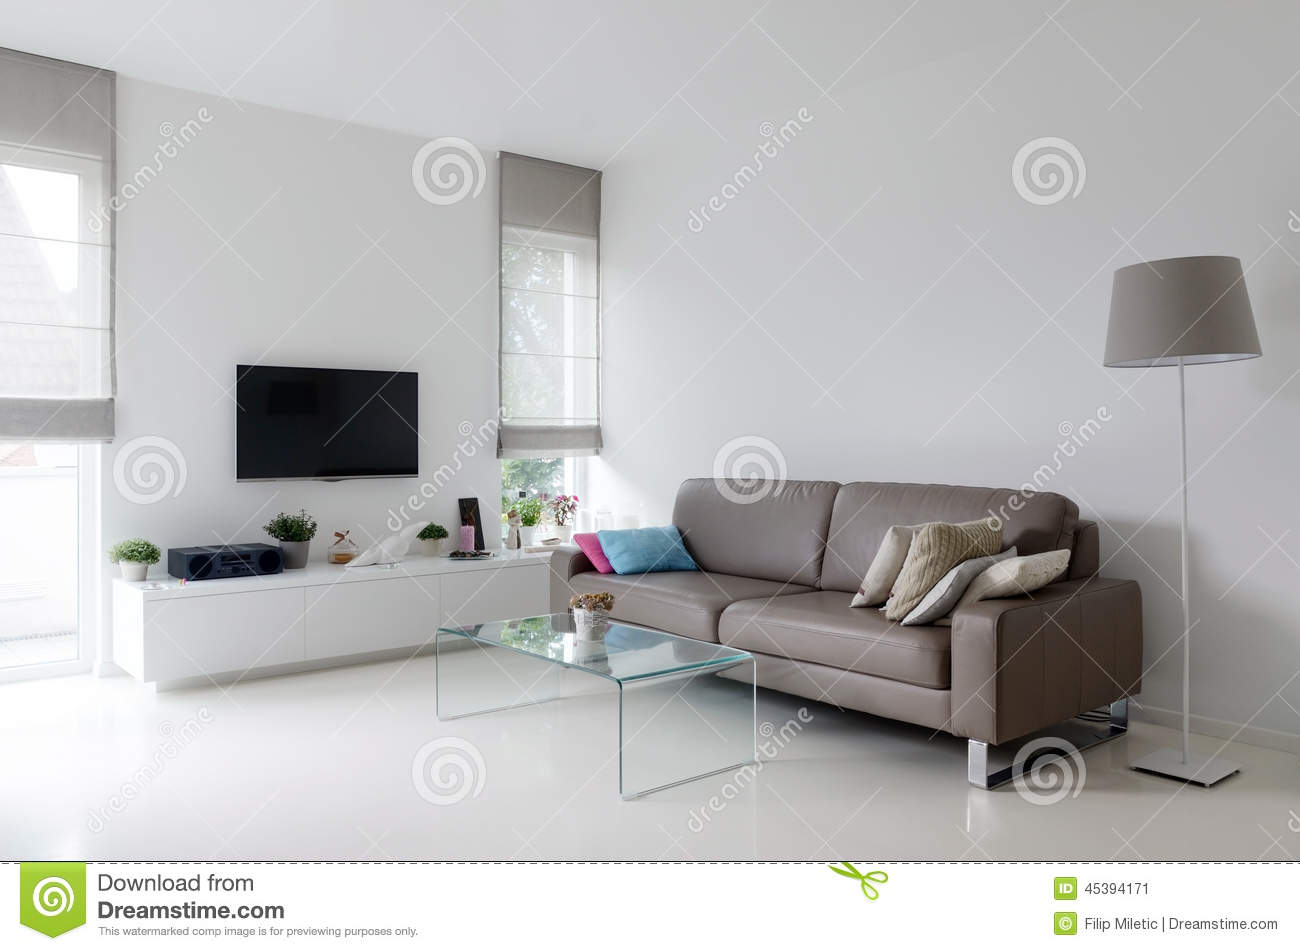 White Living Room With Taupe Sofa Stock Image - Image of home ...